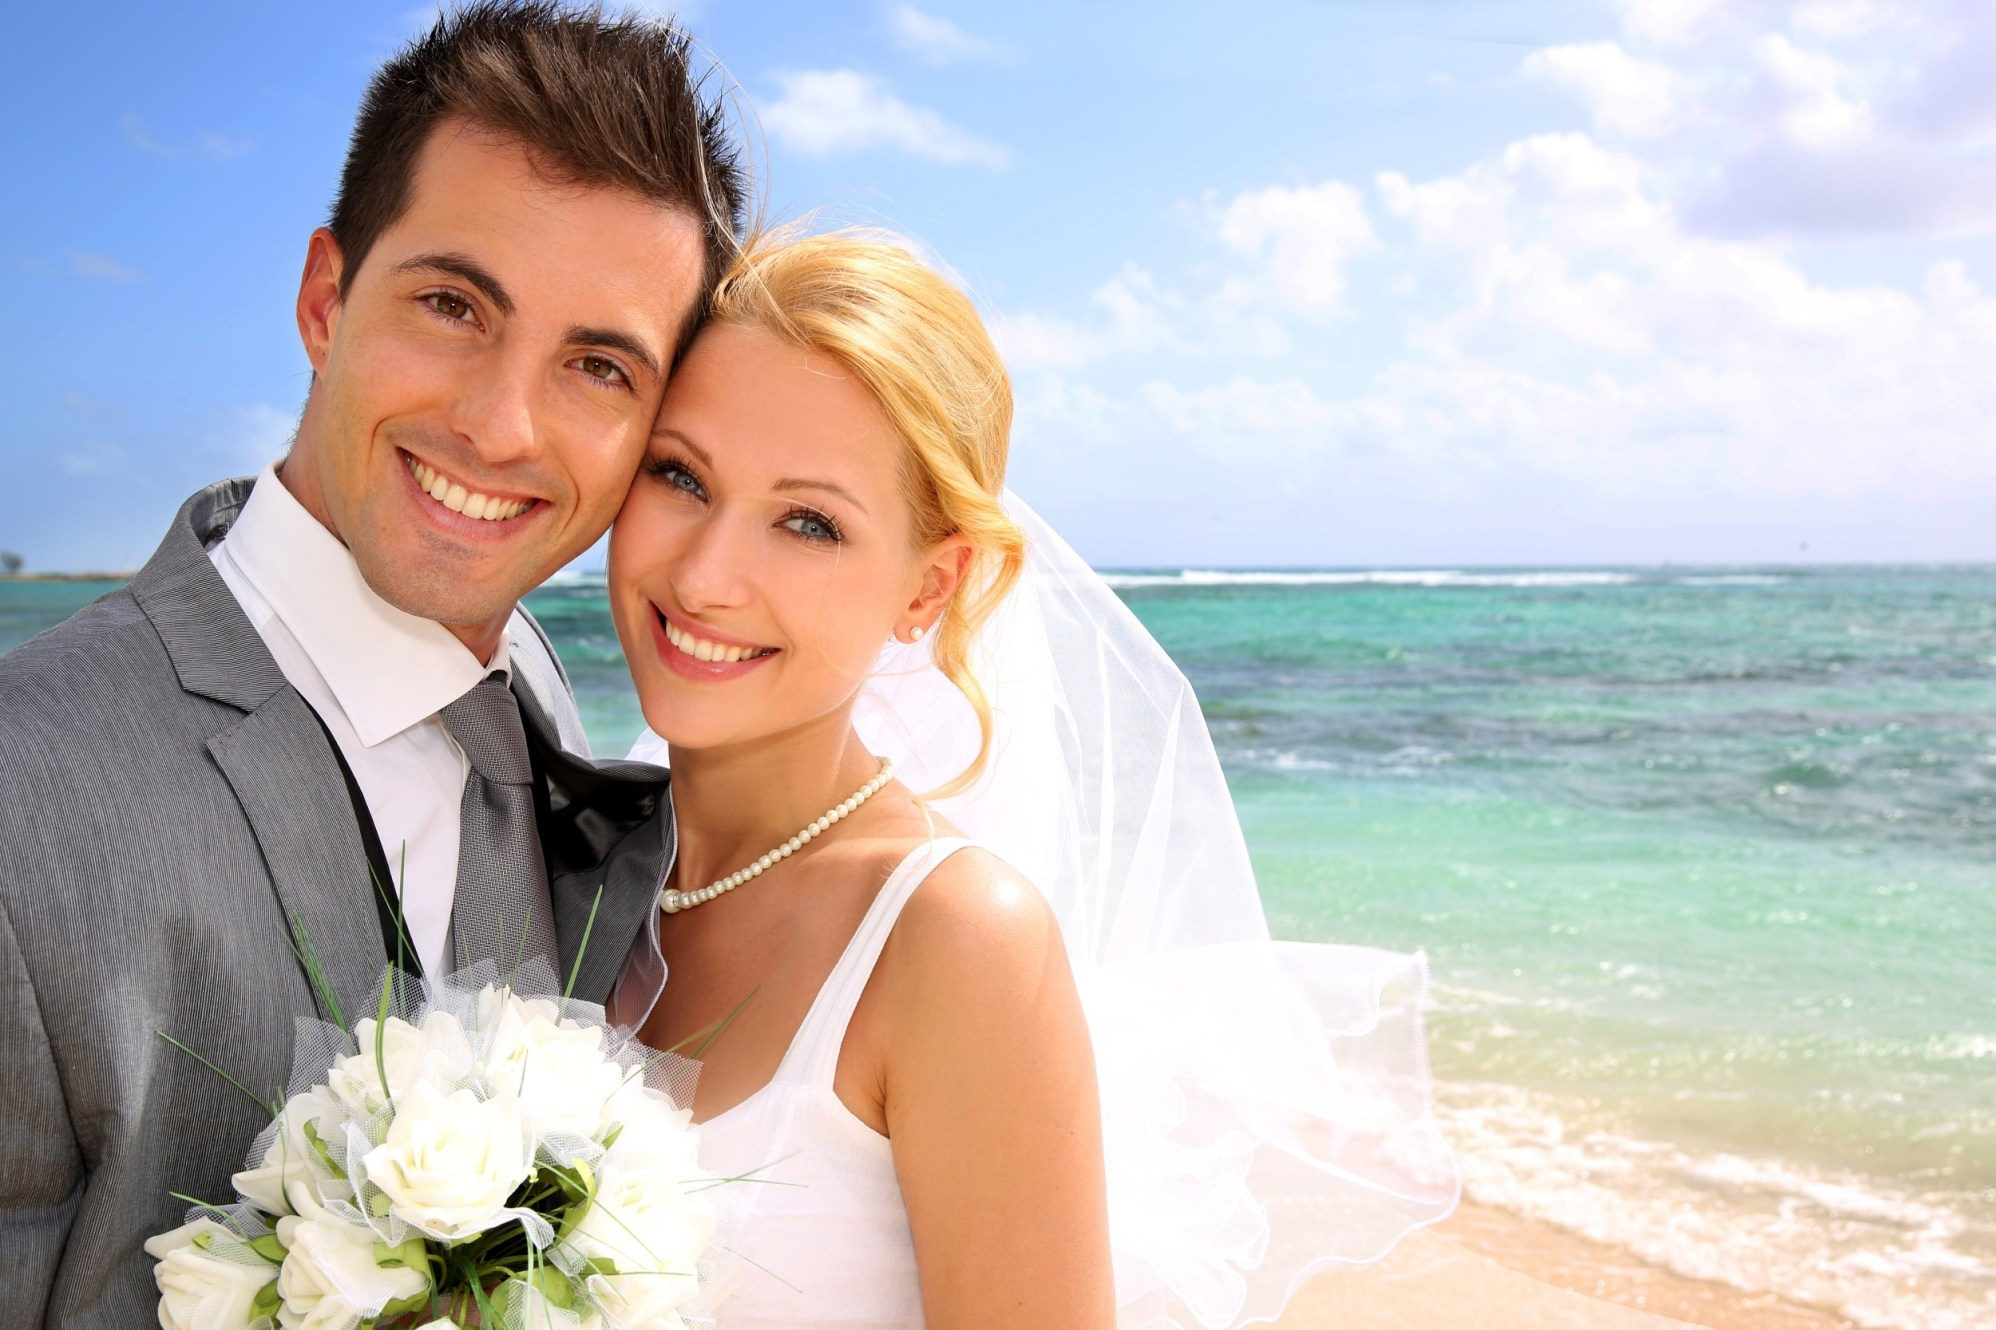 PART 1 WEDDING BEACH COUPLES PORTRAITS COLOUR AND BLACK AND WHITE 007290 (Custom)